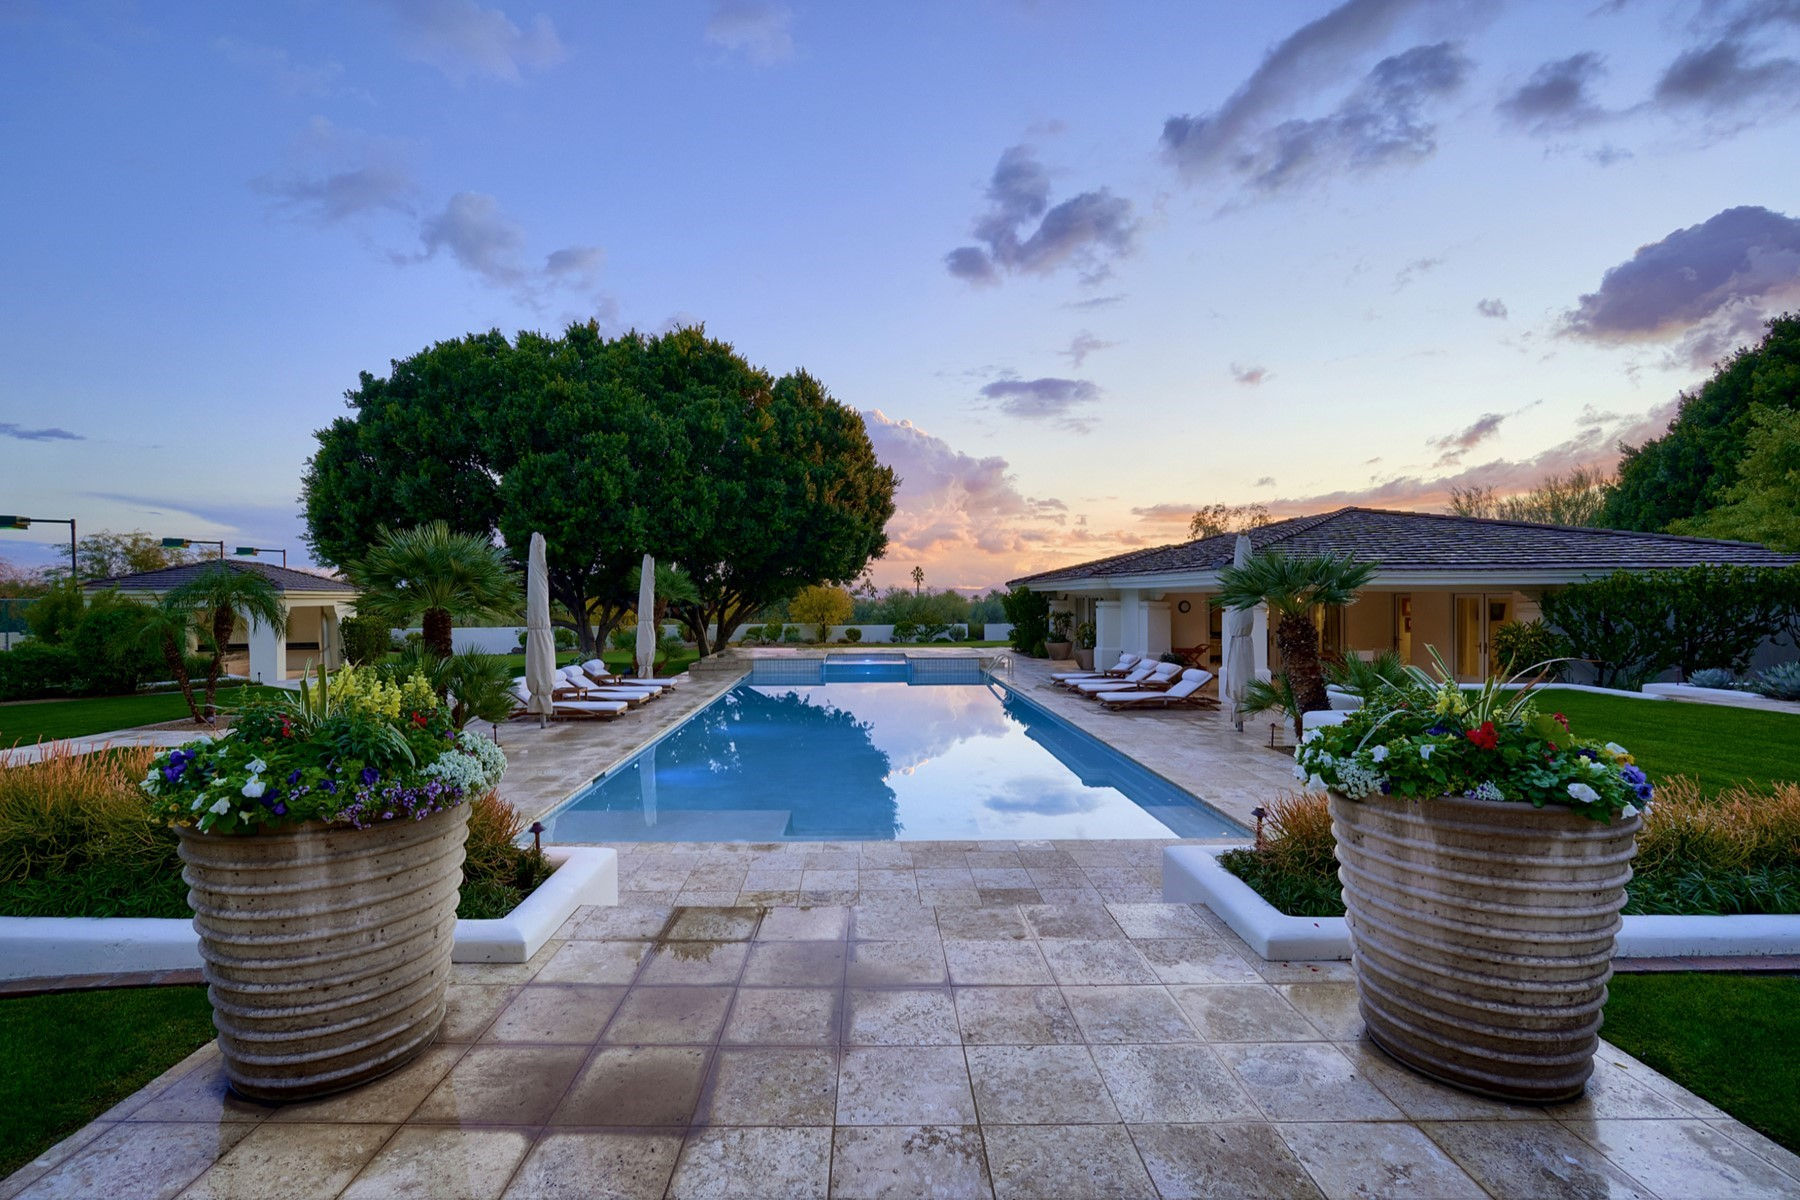 Single Family Homes for Active at Palo Verde Foothills 3801 E BERRIDGE LN Paradise Valley, Arizona 85253 United States